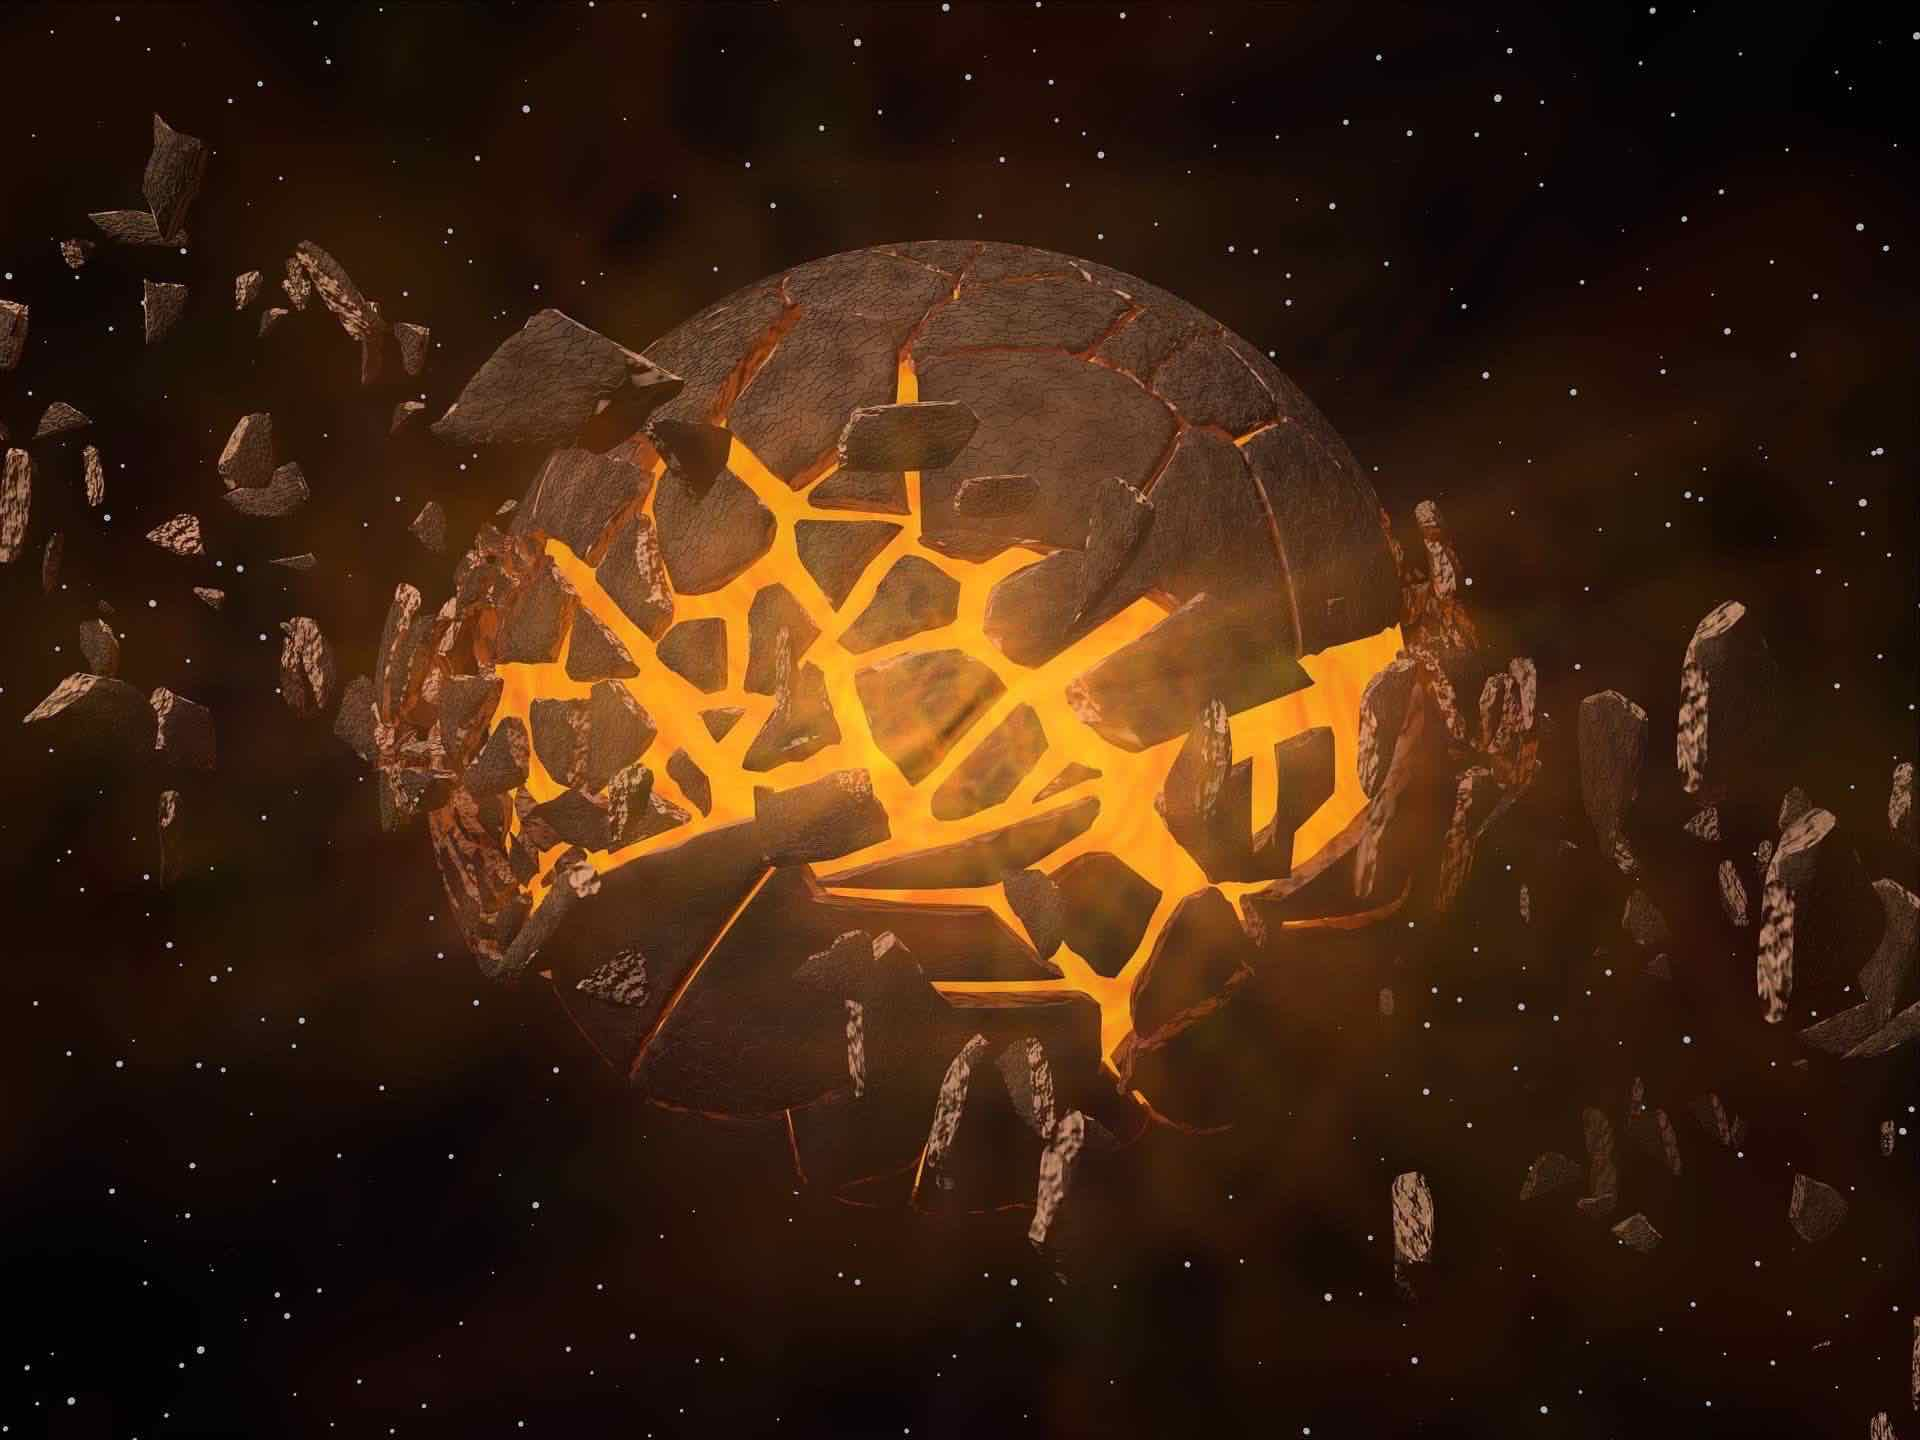 No Megastructure Limits Mod For Stellaris Stellaris is a 4x strategy game which was published by paradox interactive. no megastructure limits mod for stellaris